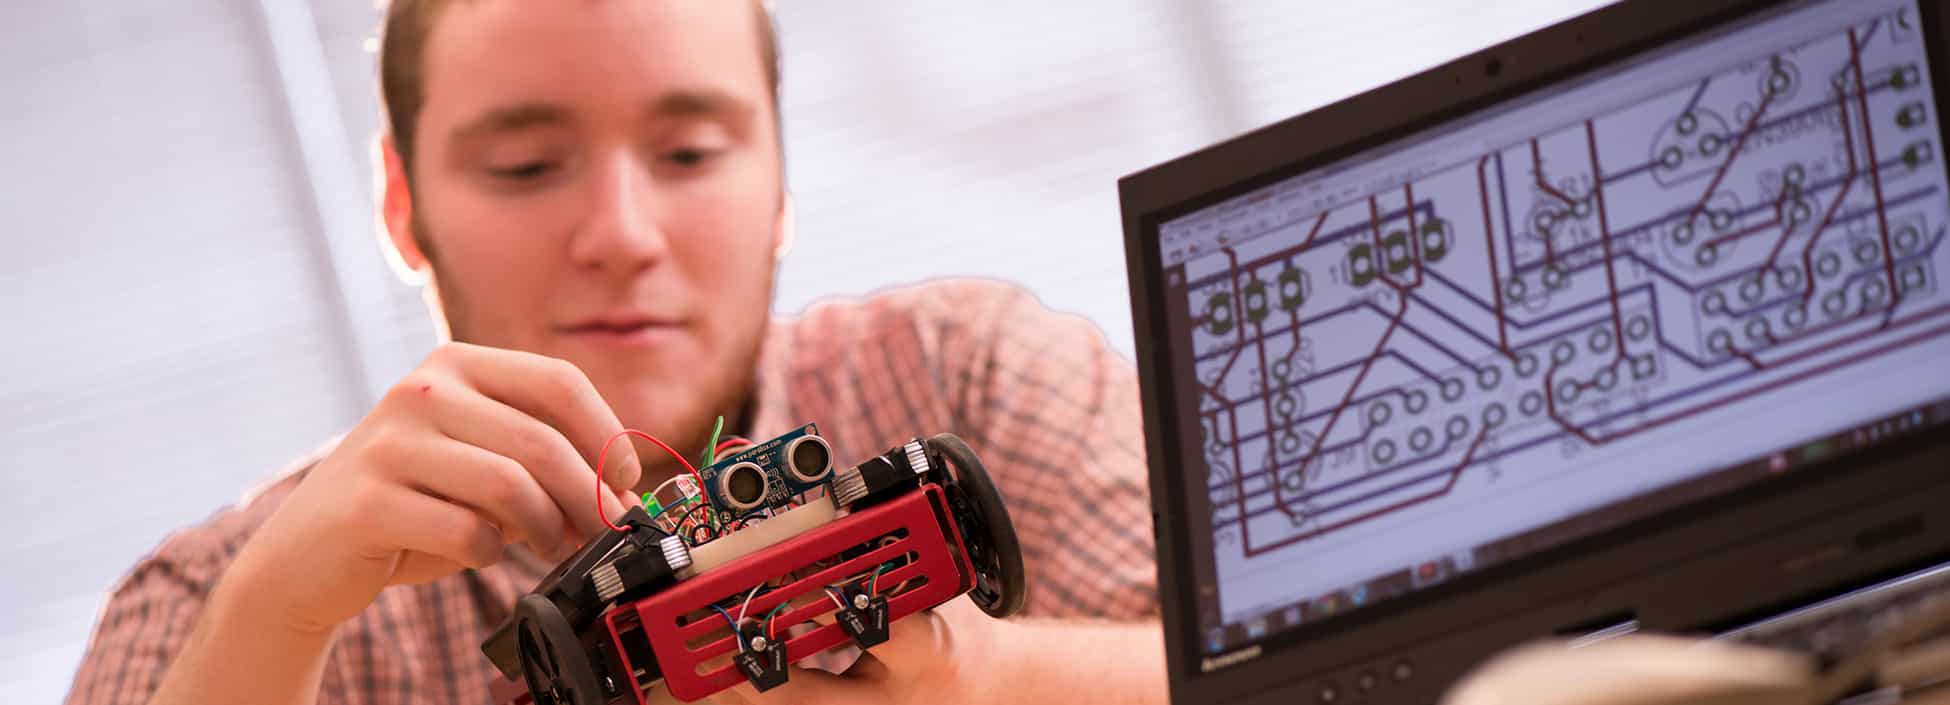 An Electromechanical Engineering Technology students works with a remote car in lab